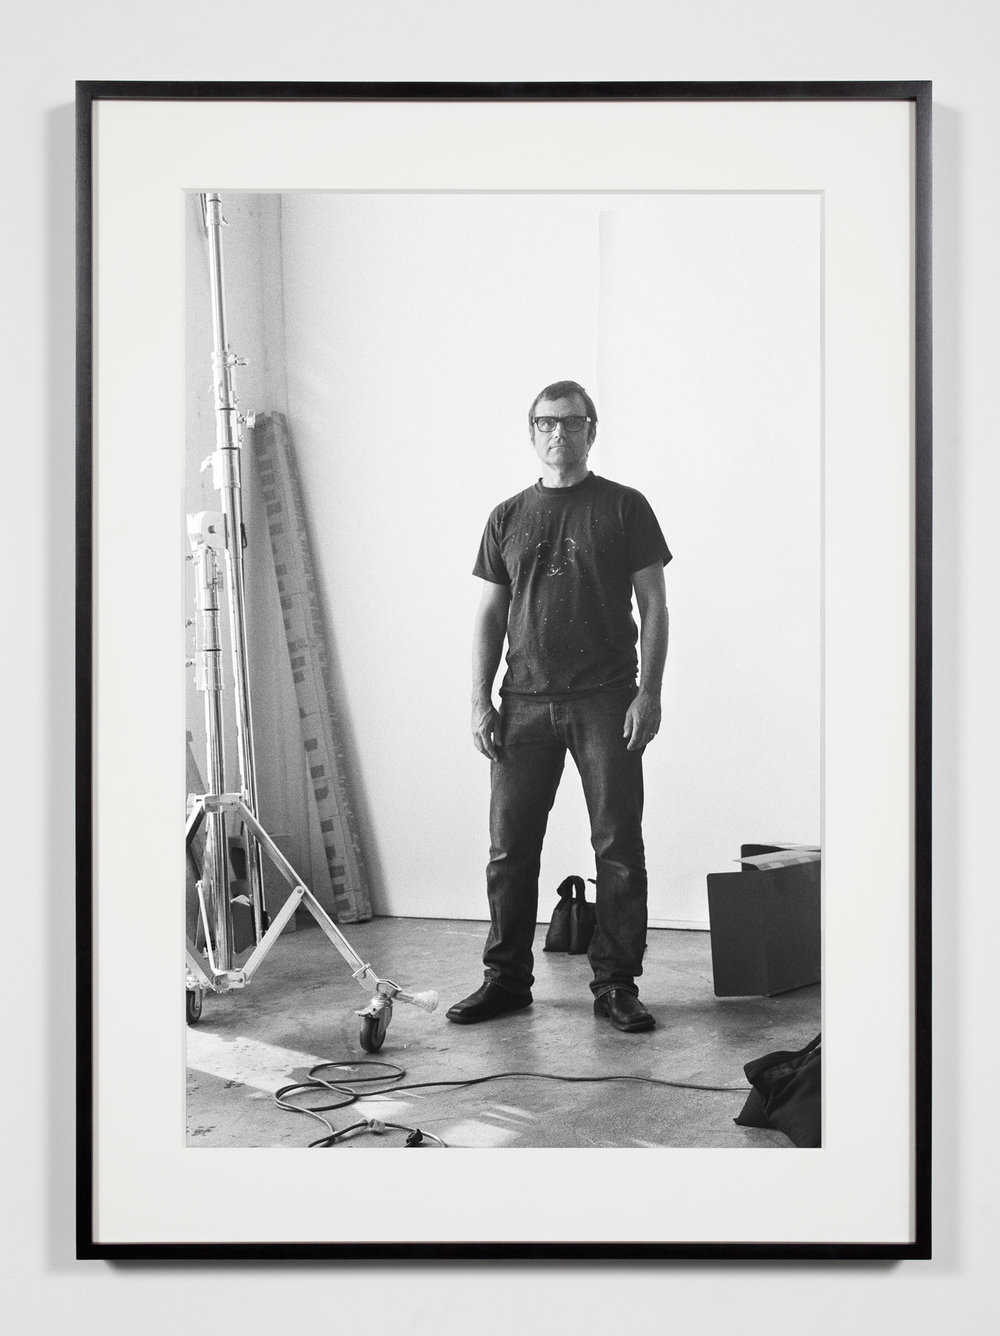 Photographer, Los Angeles, California, June 3, 2009   2011  Epson Ultrachrome K3 archival ink jet print on Hahnemühle Photo Rag paper  36 3/8 x 26 3/8 inches   Industrial Portraits, 2008–    A Diagram of Forces, 2011